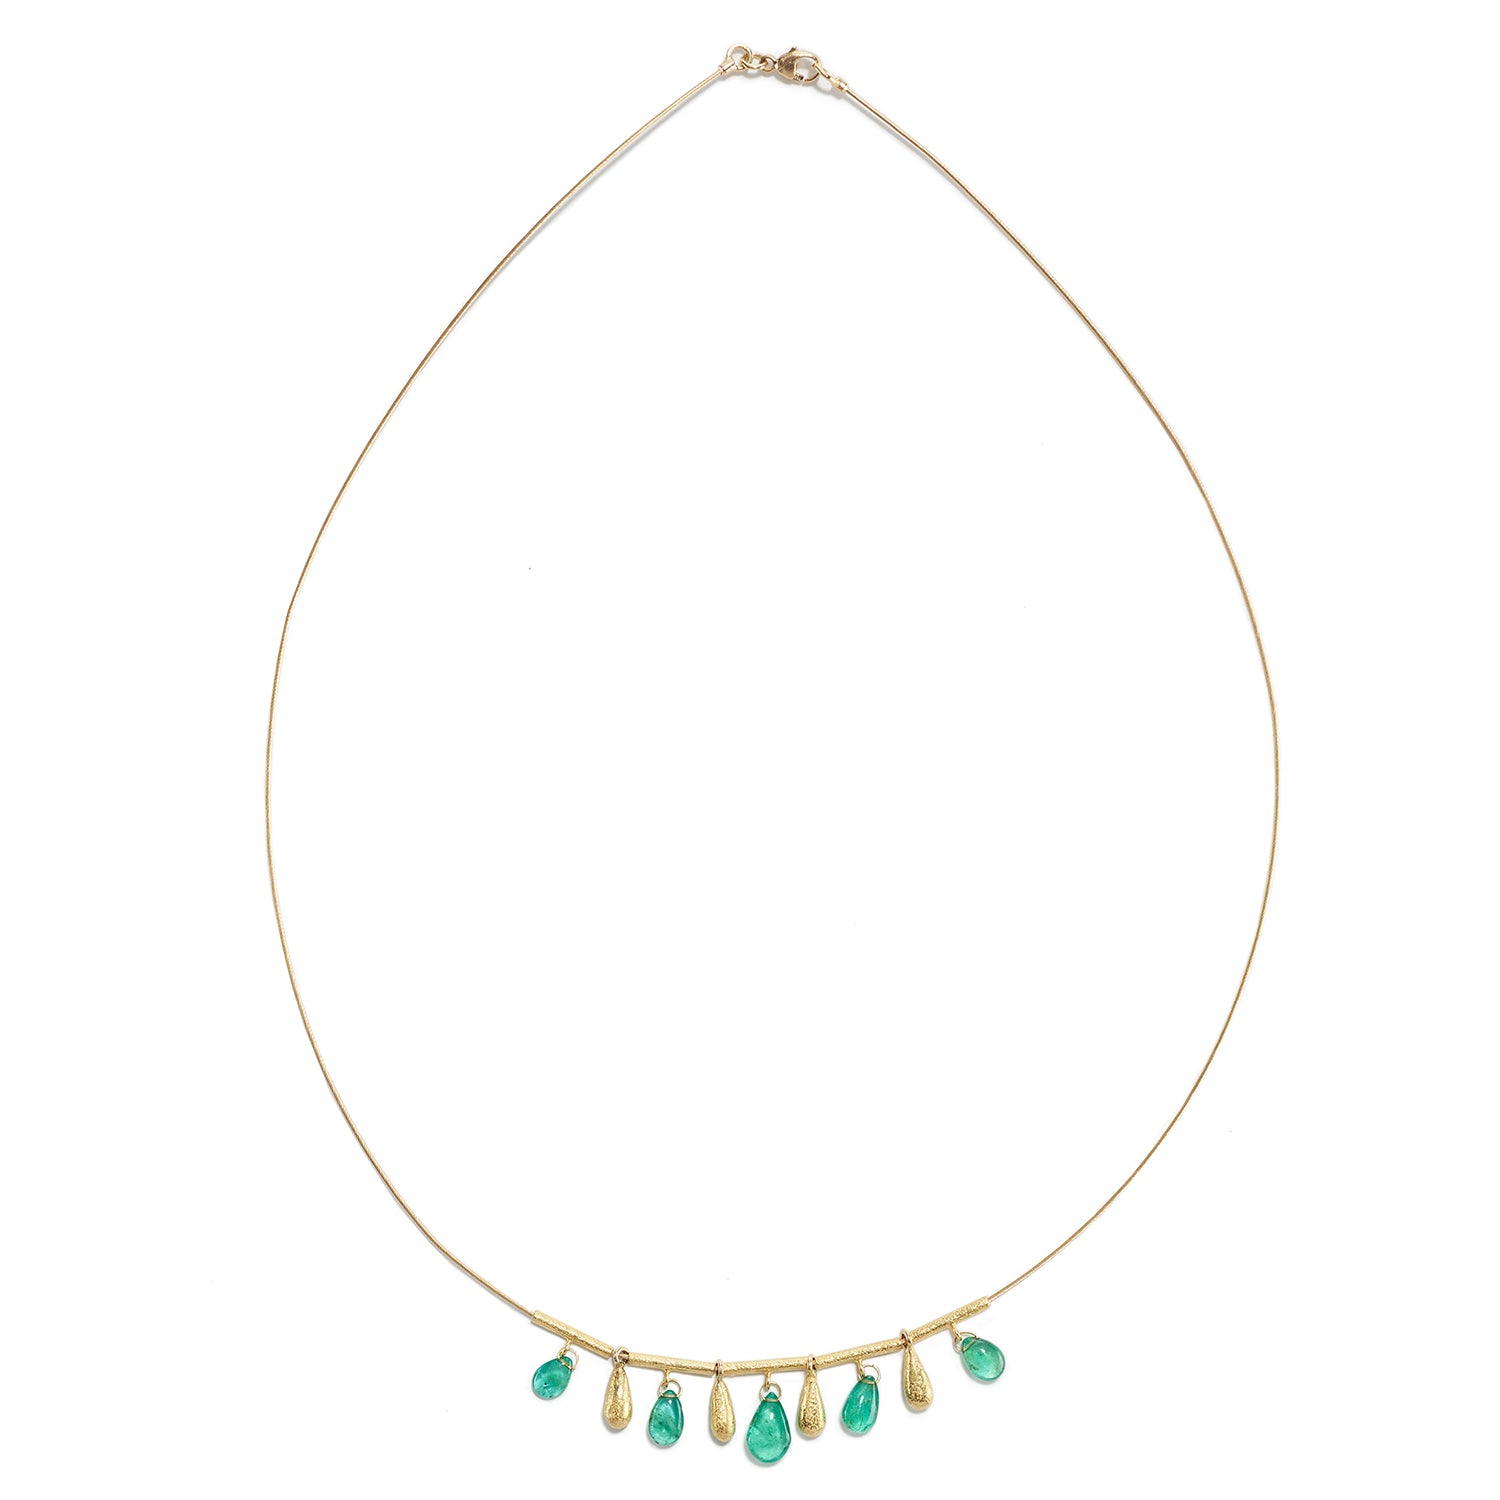 Necklace with Five Emerald Teardrops